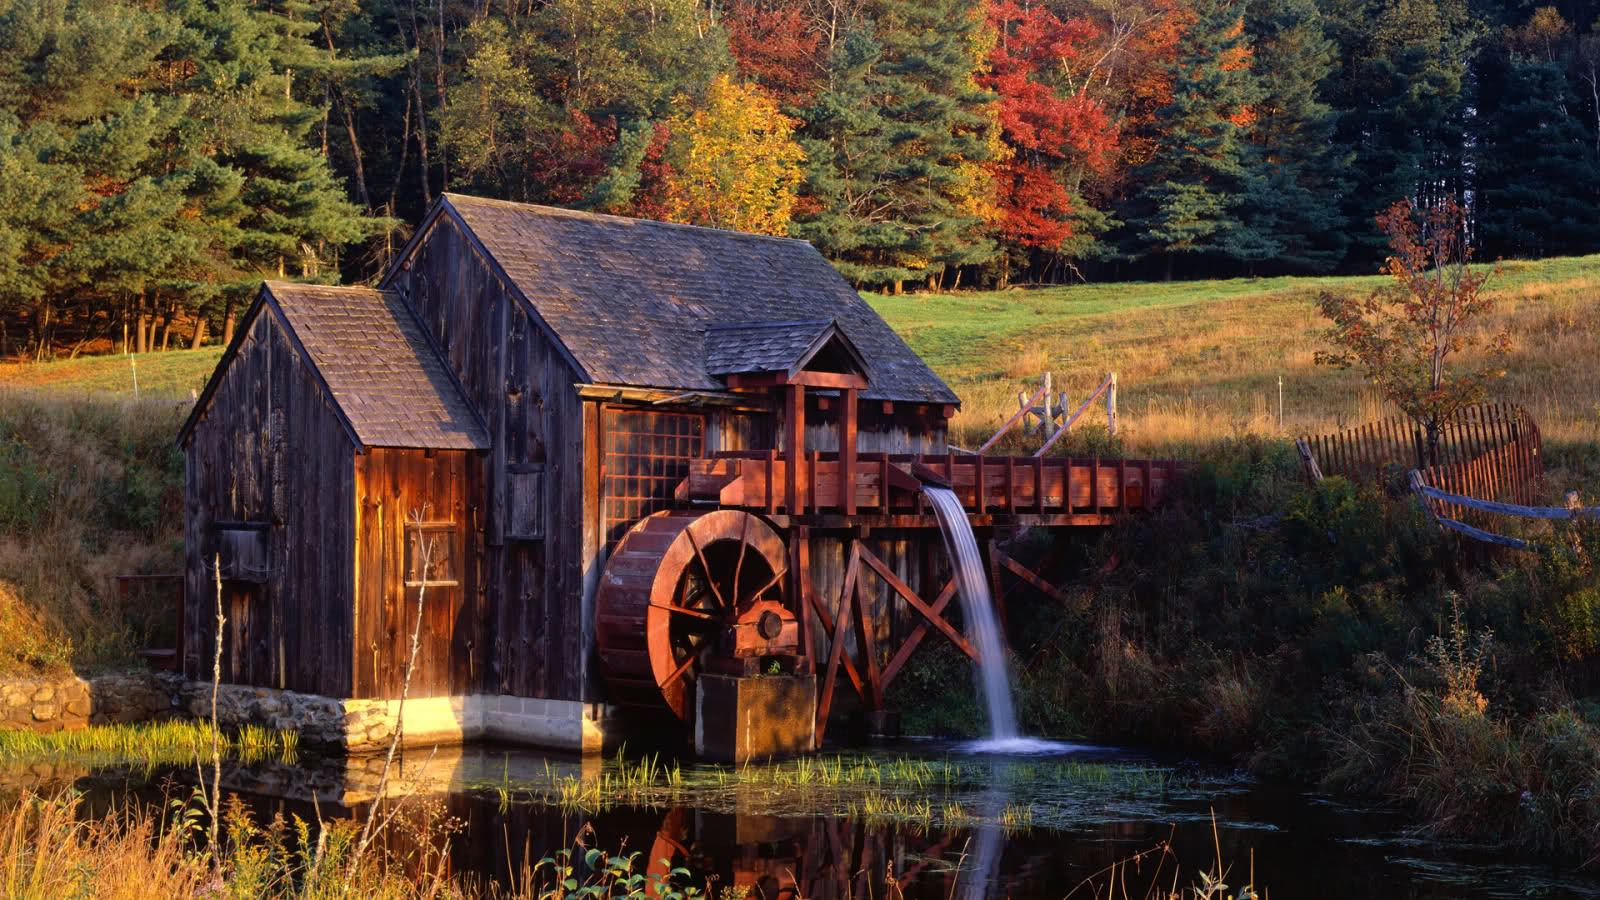 Fall Foliage Wallpaper Widescreen Watermill Wallpaper And Background Image 1600x900 Id